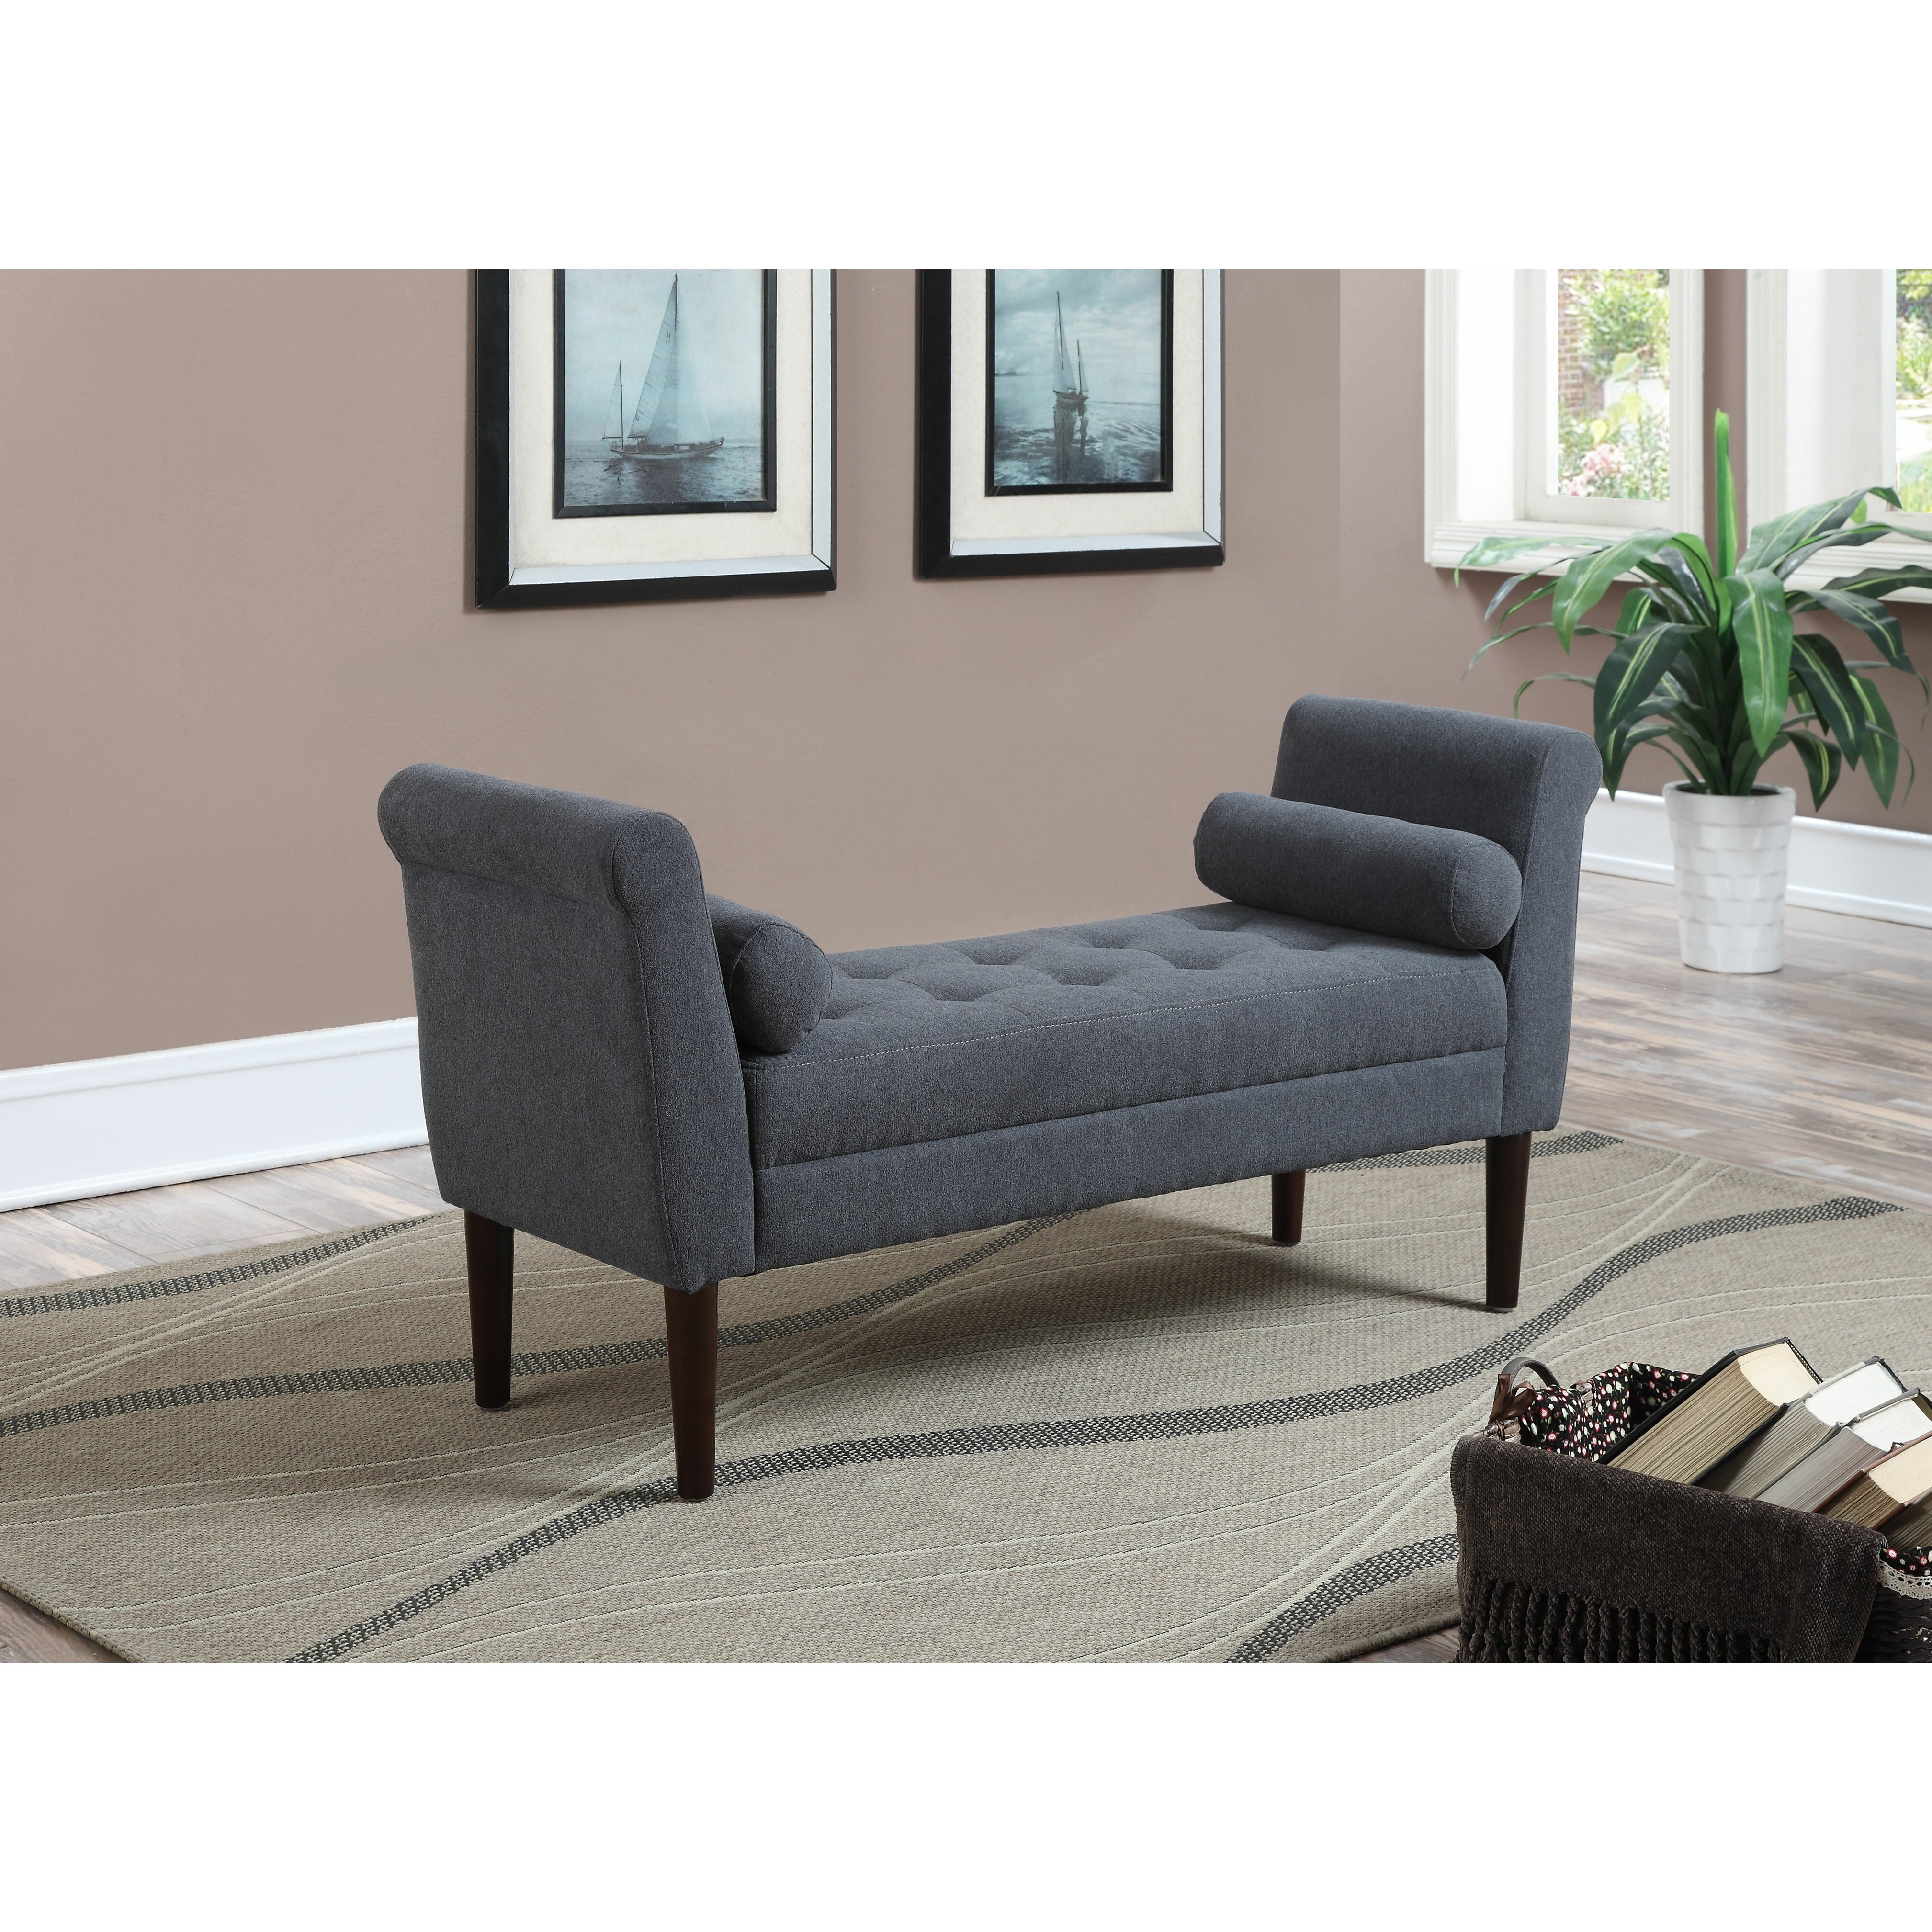 AC Pacific Betty Upholstered Bedroom Bench & Reviews